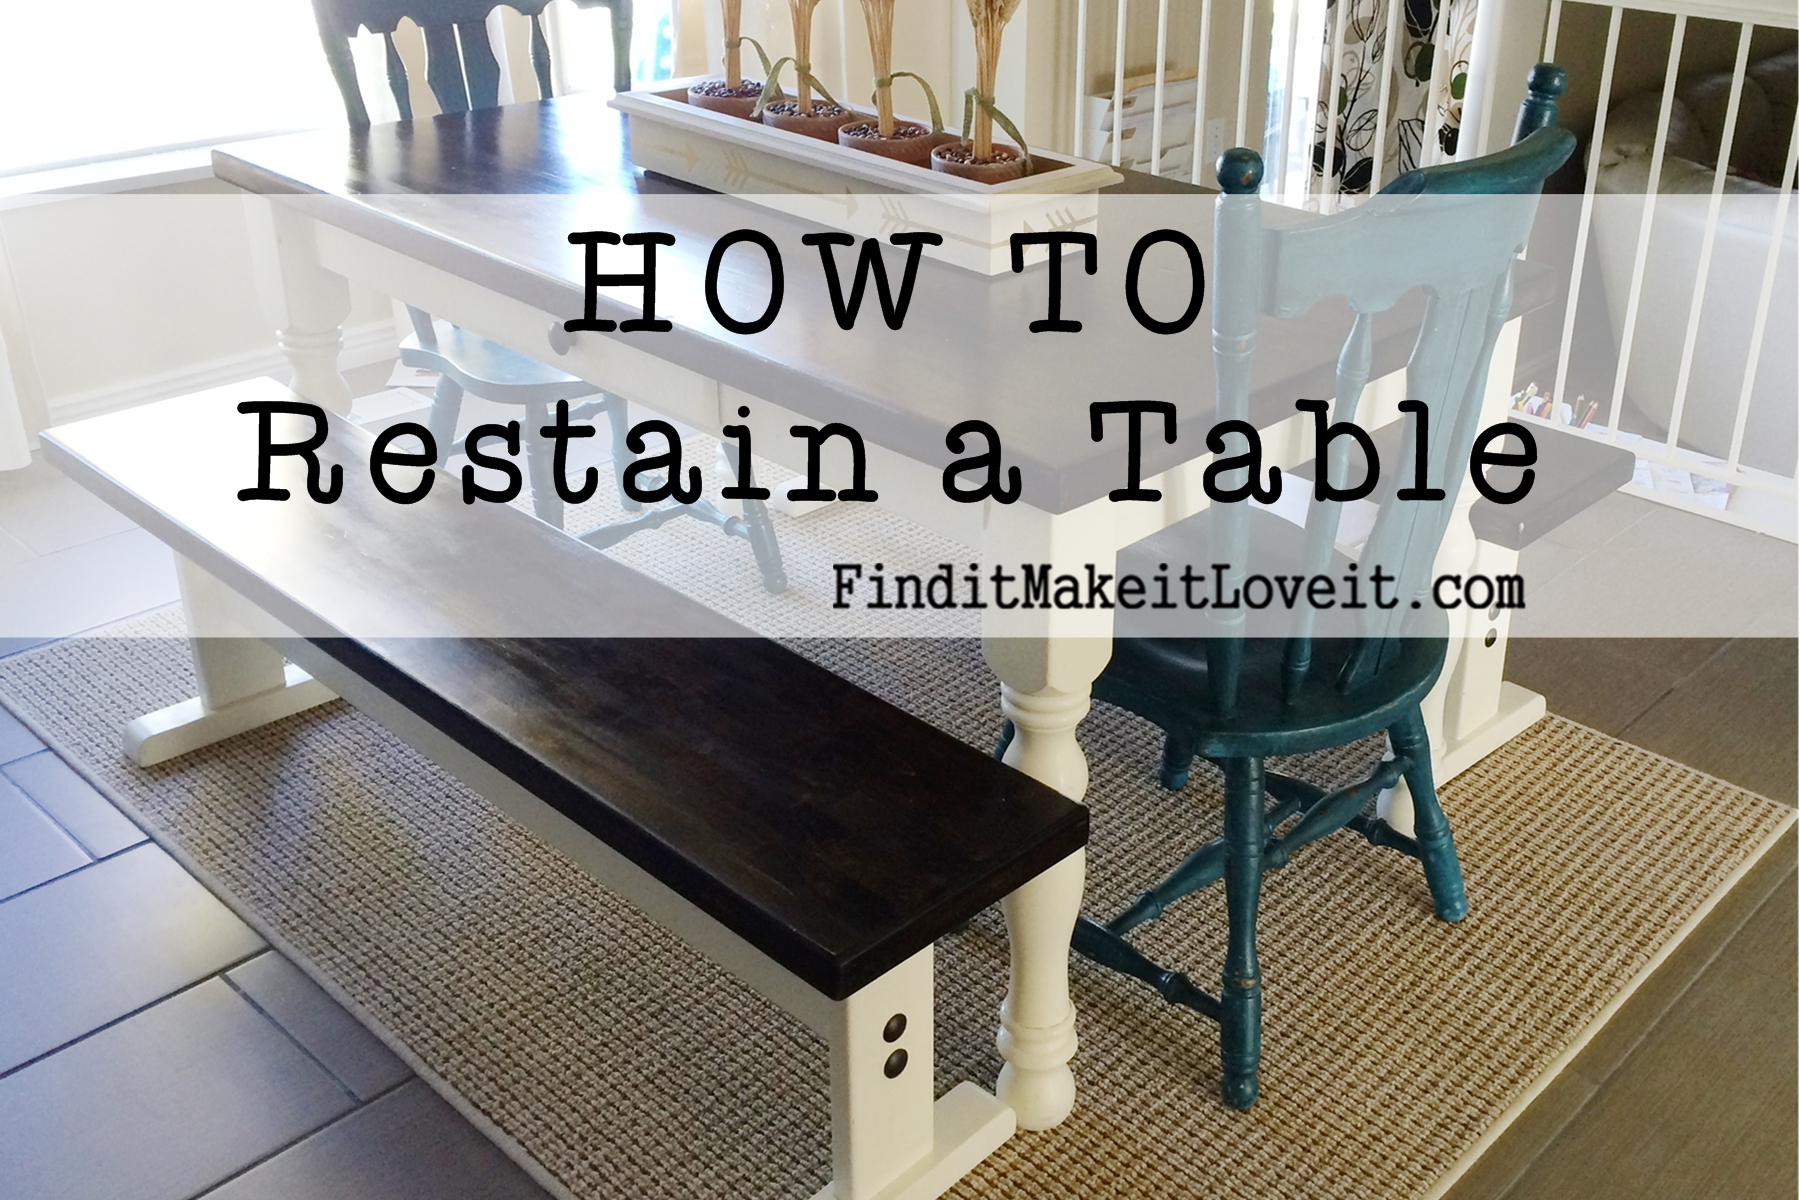 How to restain a table find it make it love it for Find a table